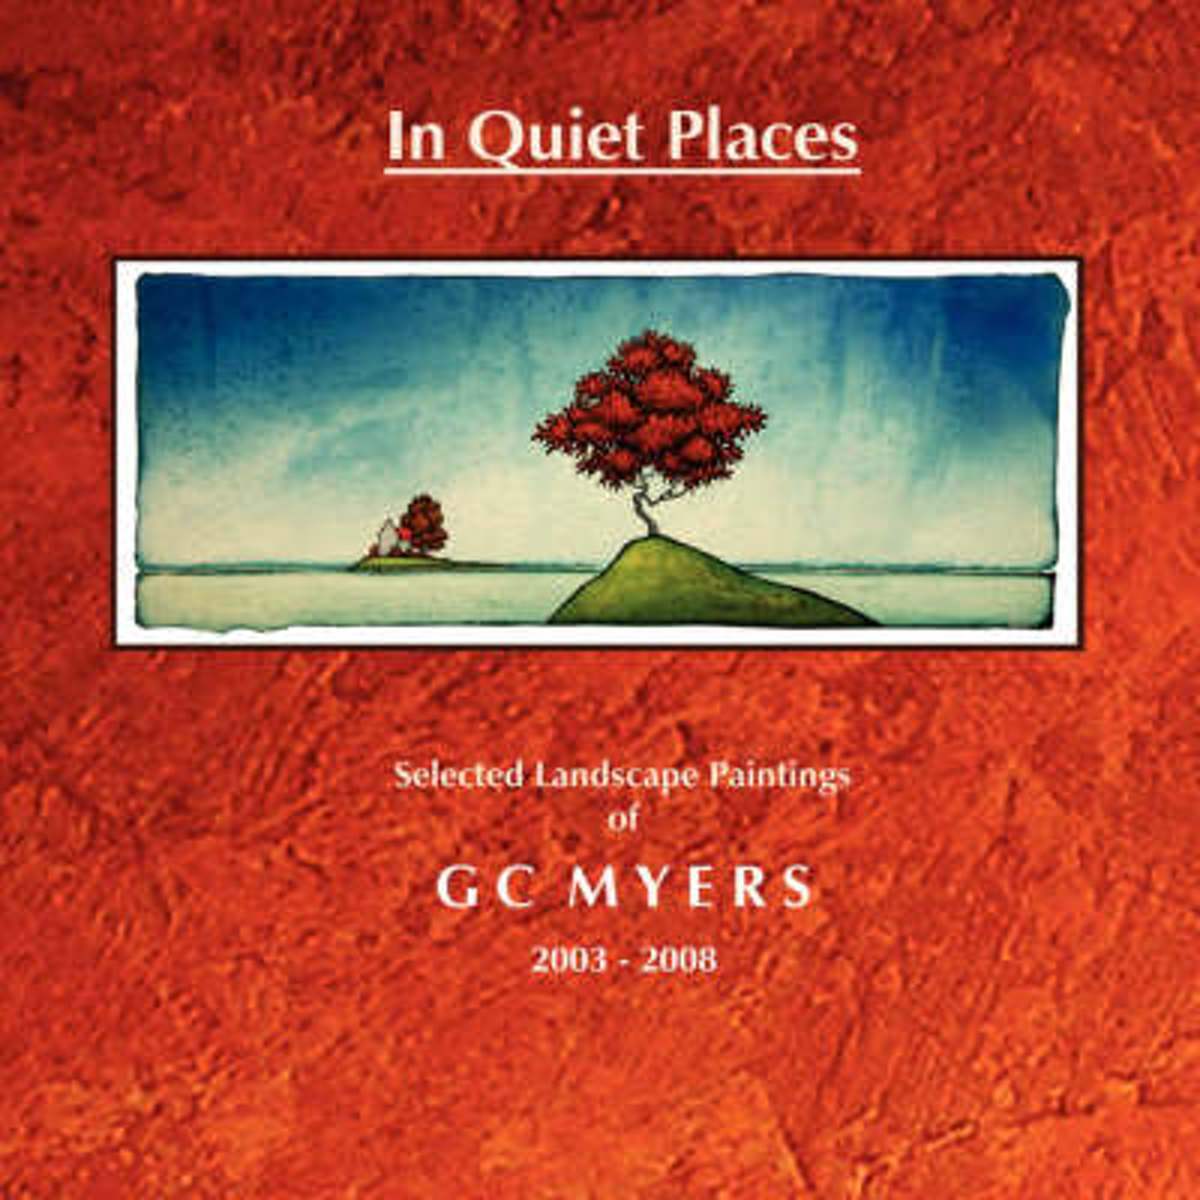 In Quiet Places